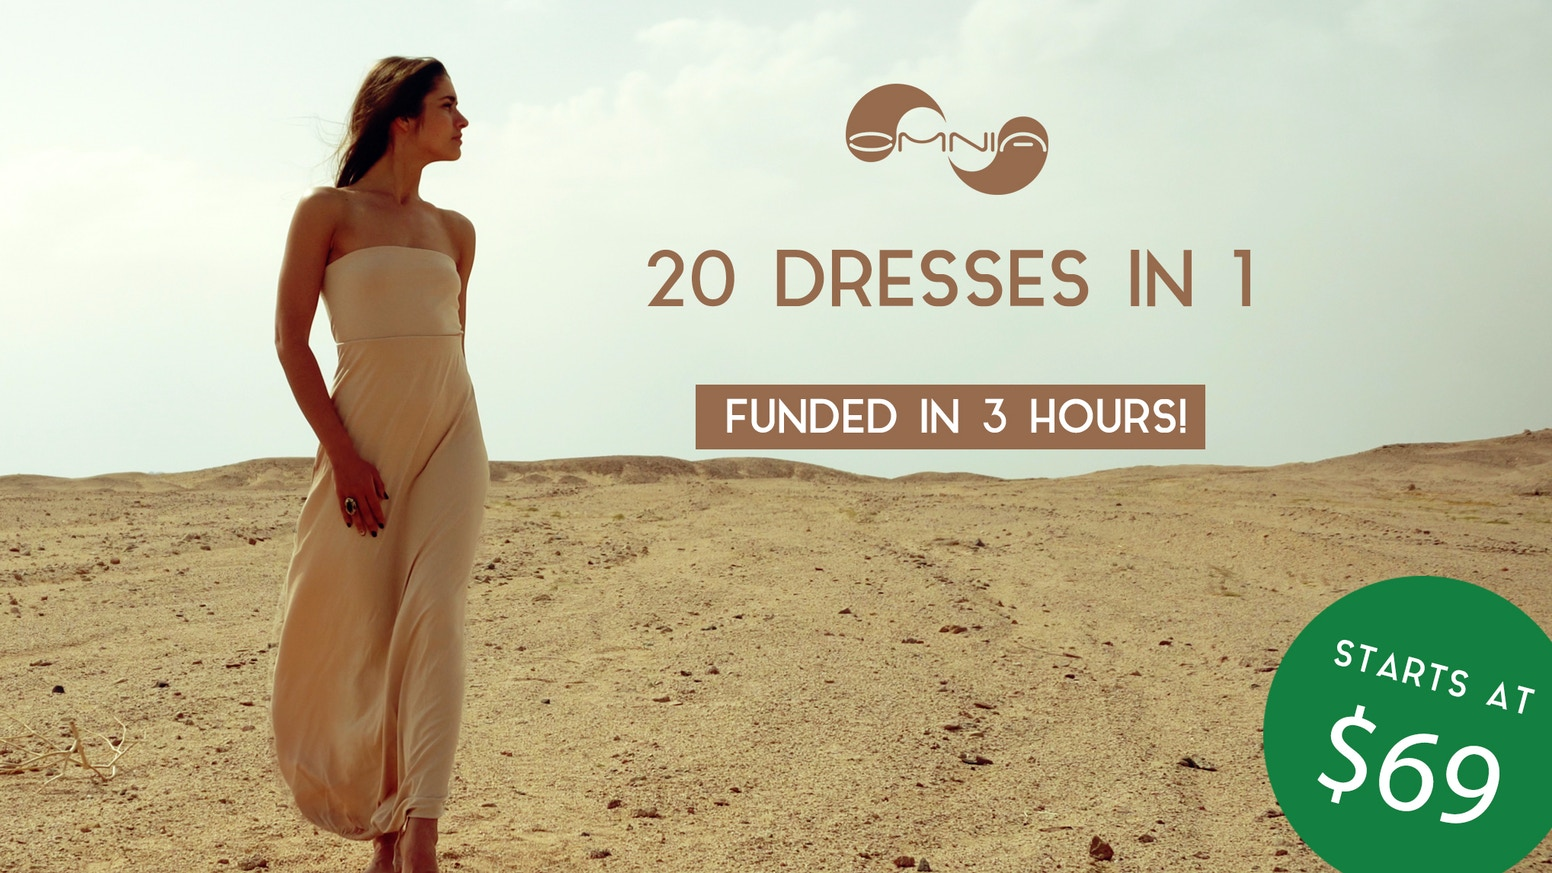 20 practical outfits in 1. Elegant, multifunctional dress for everyday use. High-end innovation for active women!